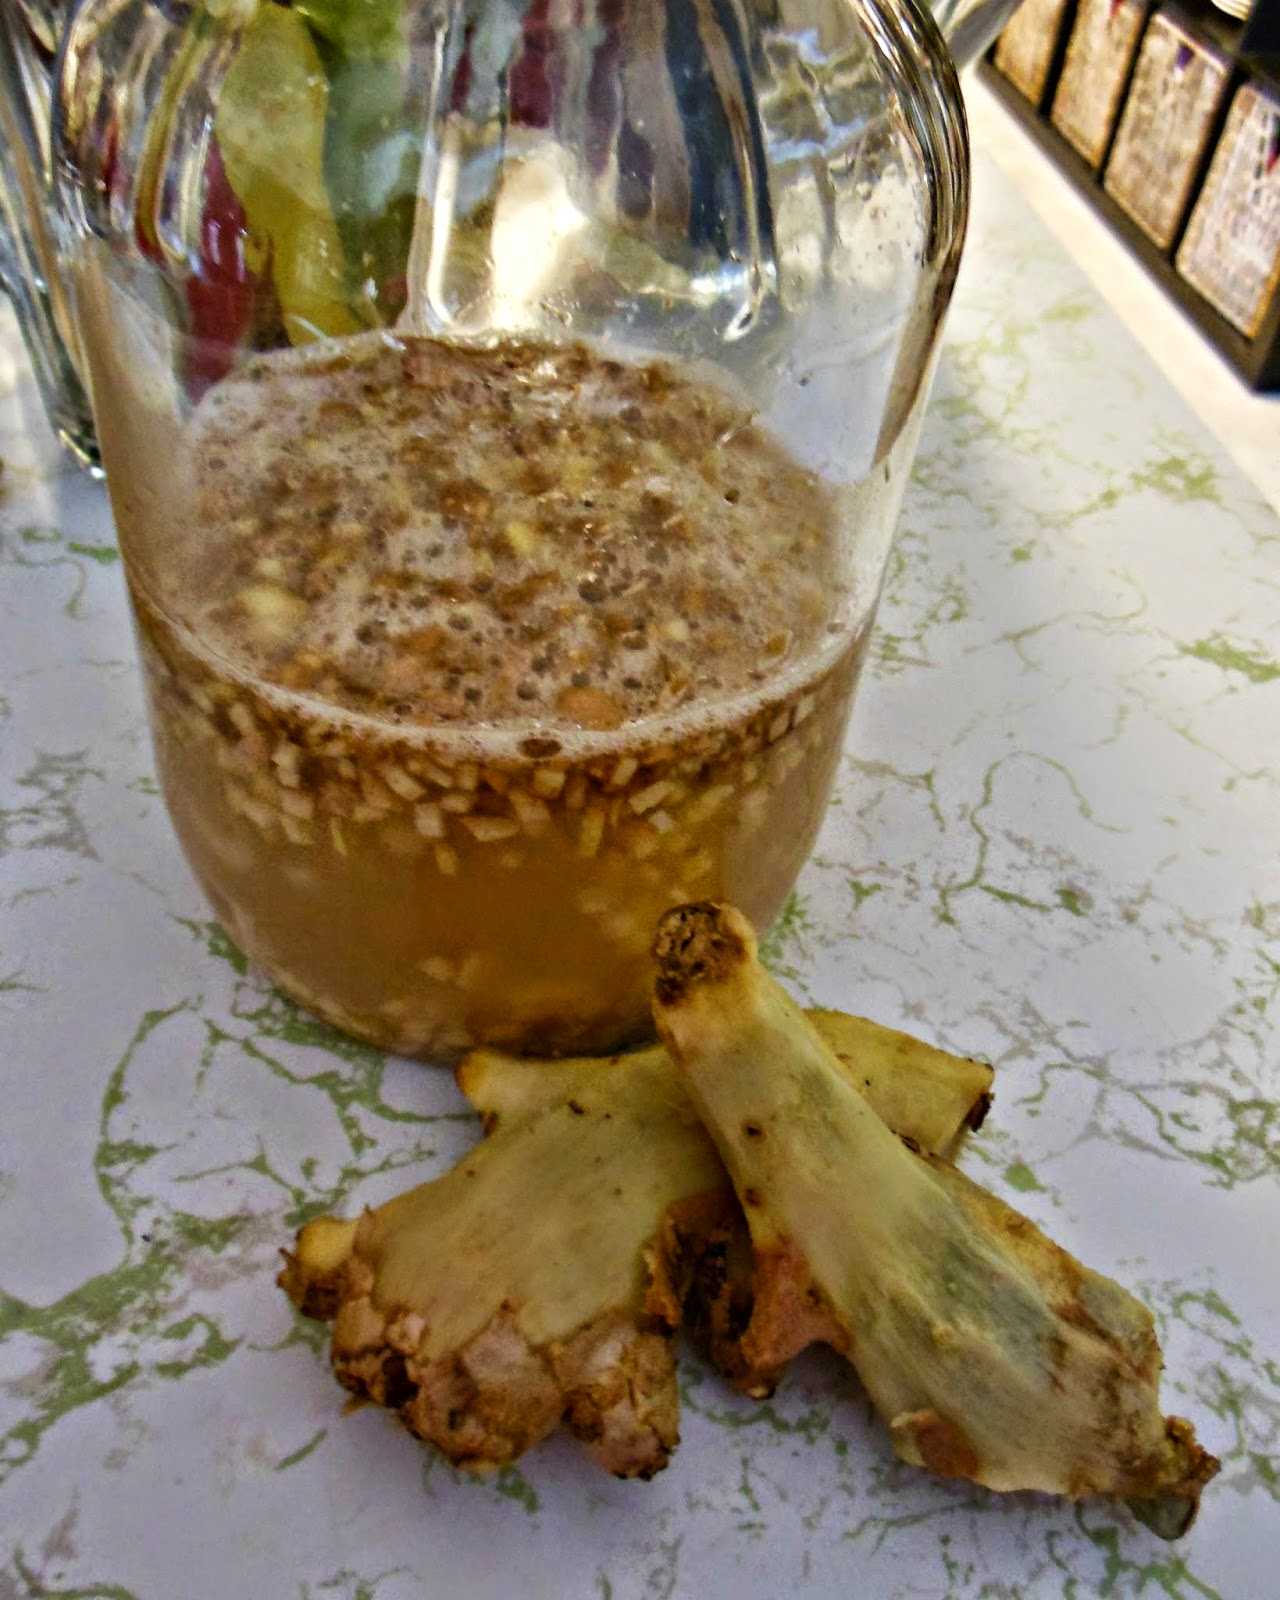 Hot to make Homemade Ginger Ale.